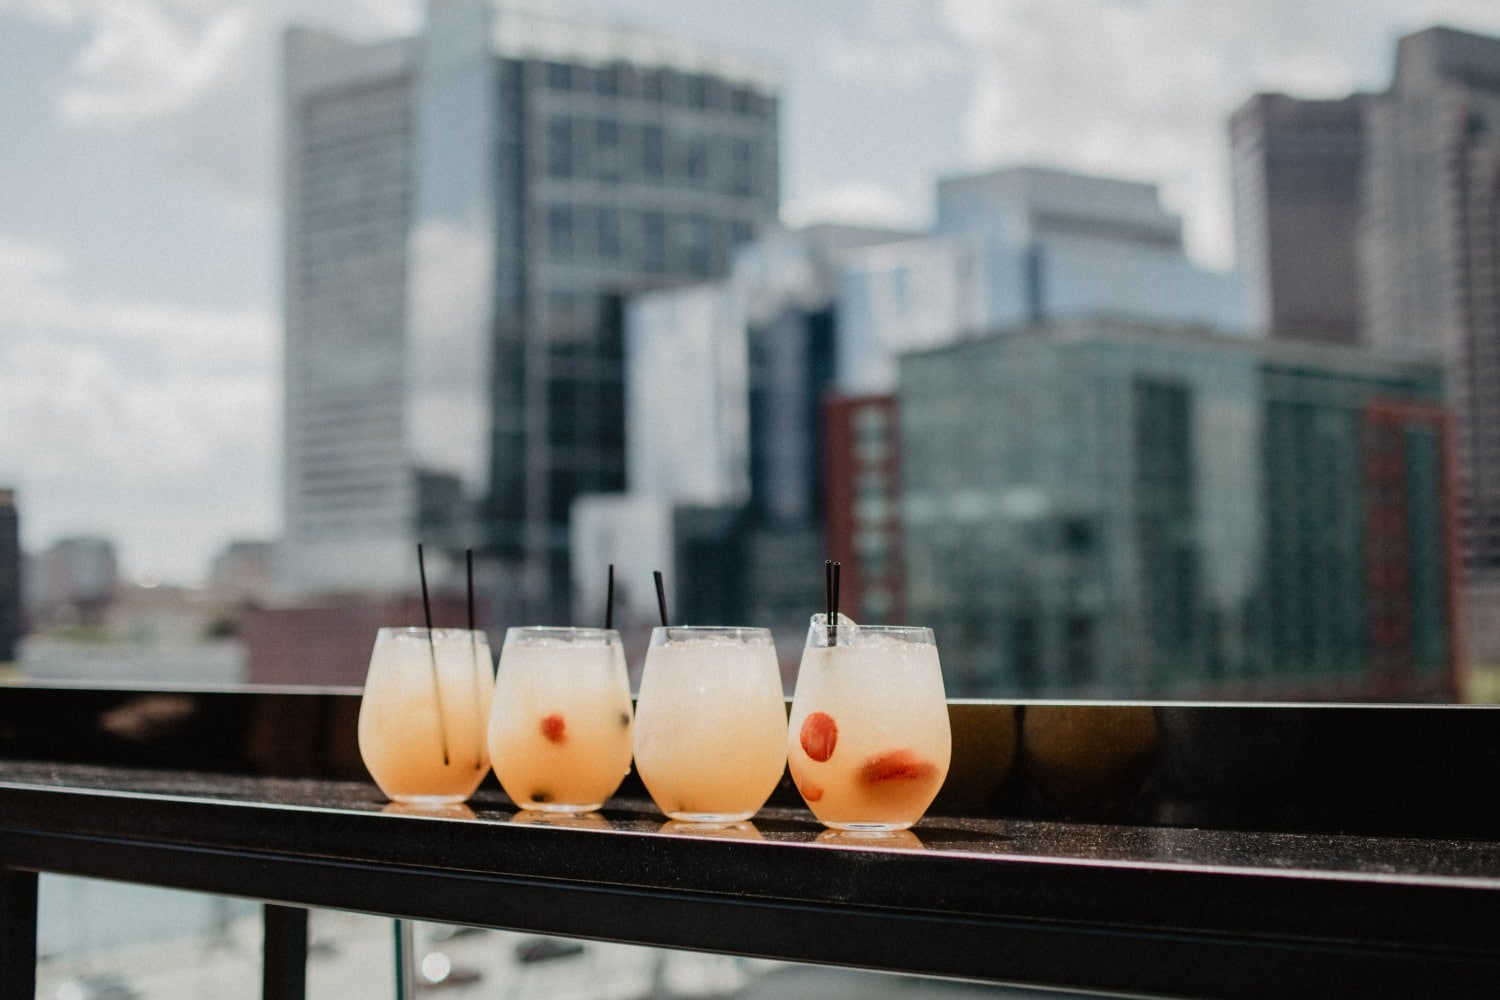 4 cocktails on rooftop bar with skyline in background